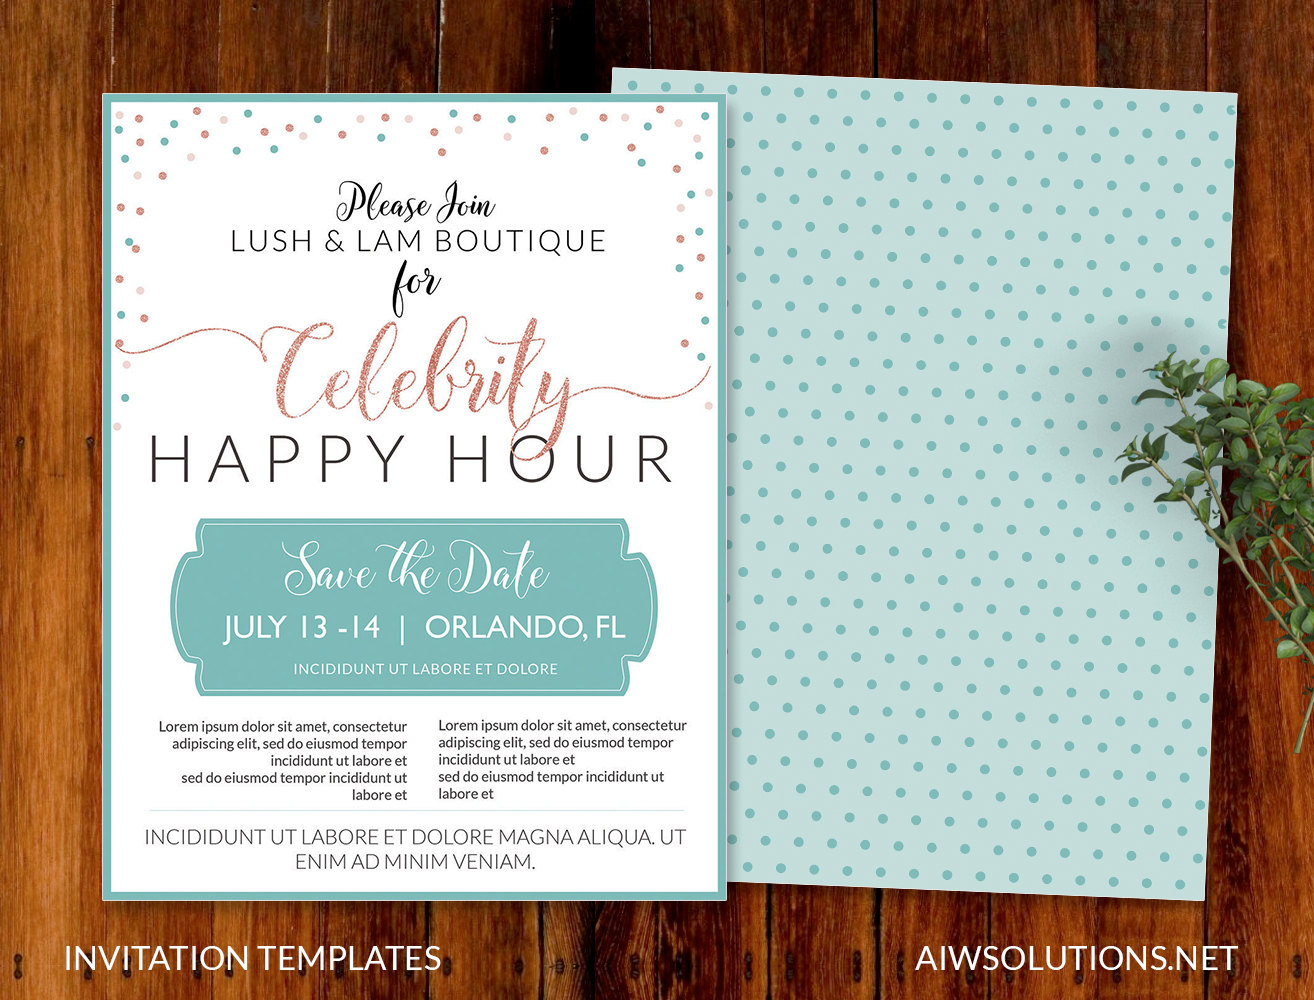 product promotion flyer a flyer presentation flyer photography invitation template happy hour template